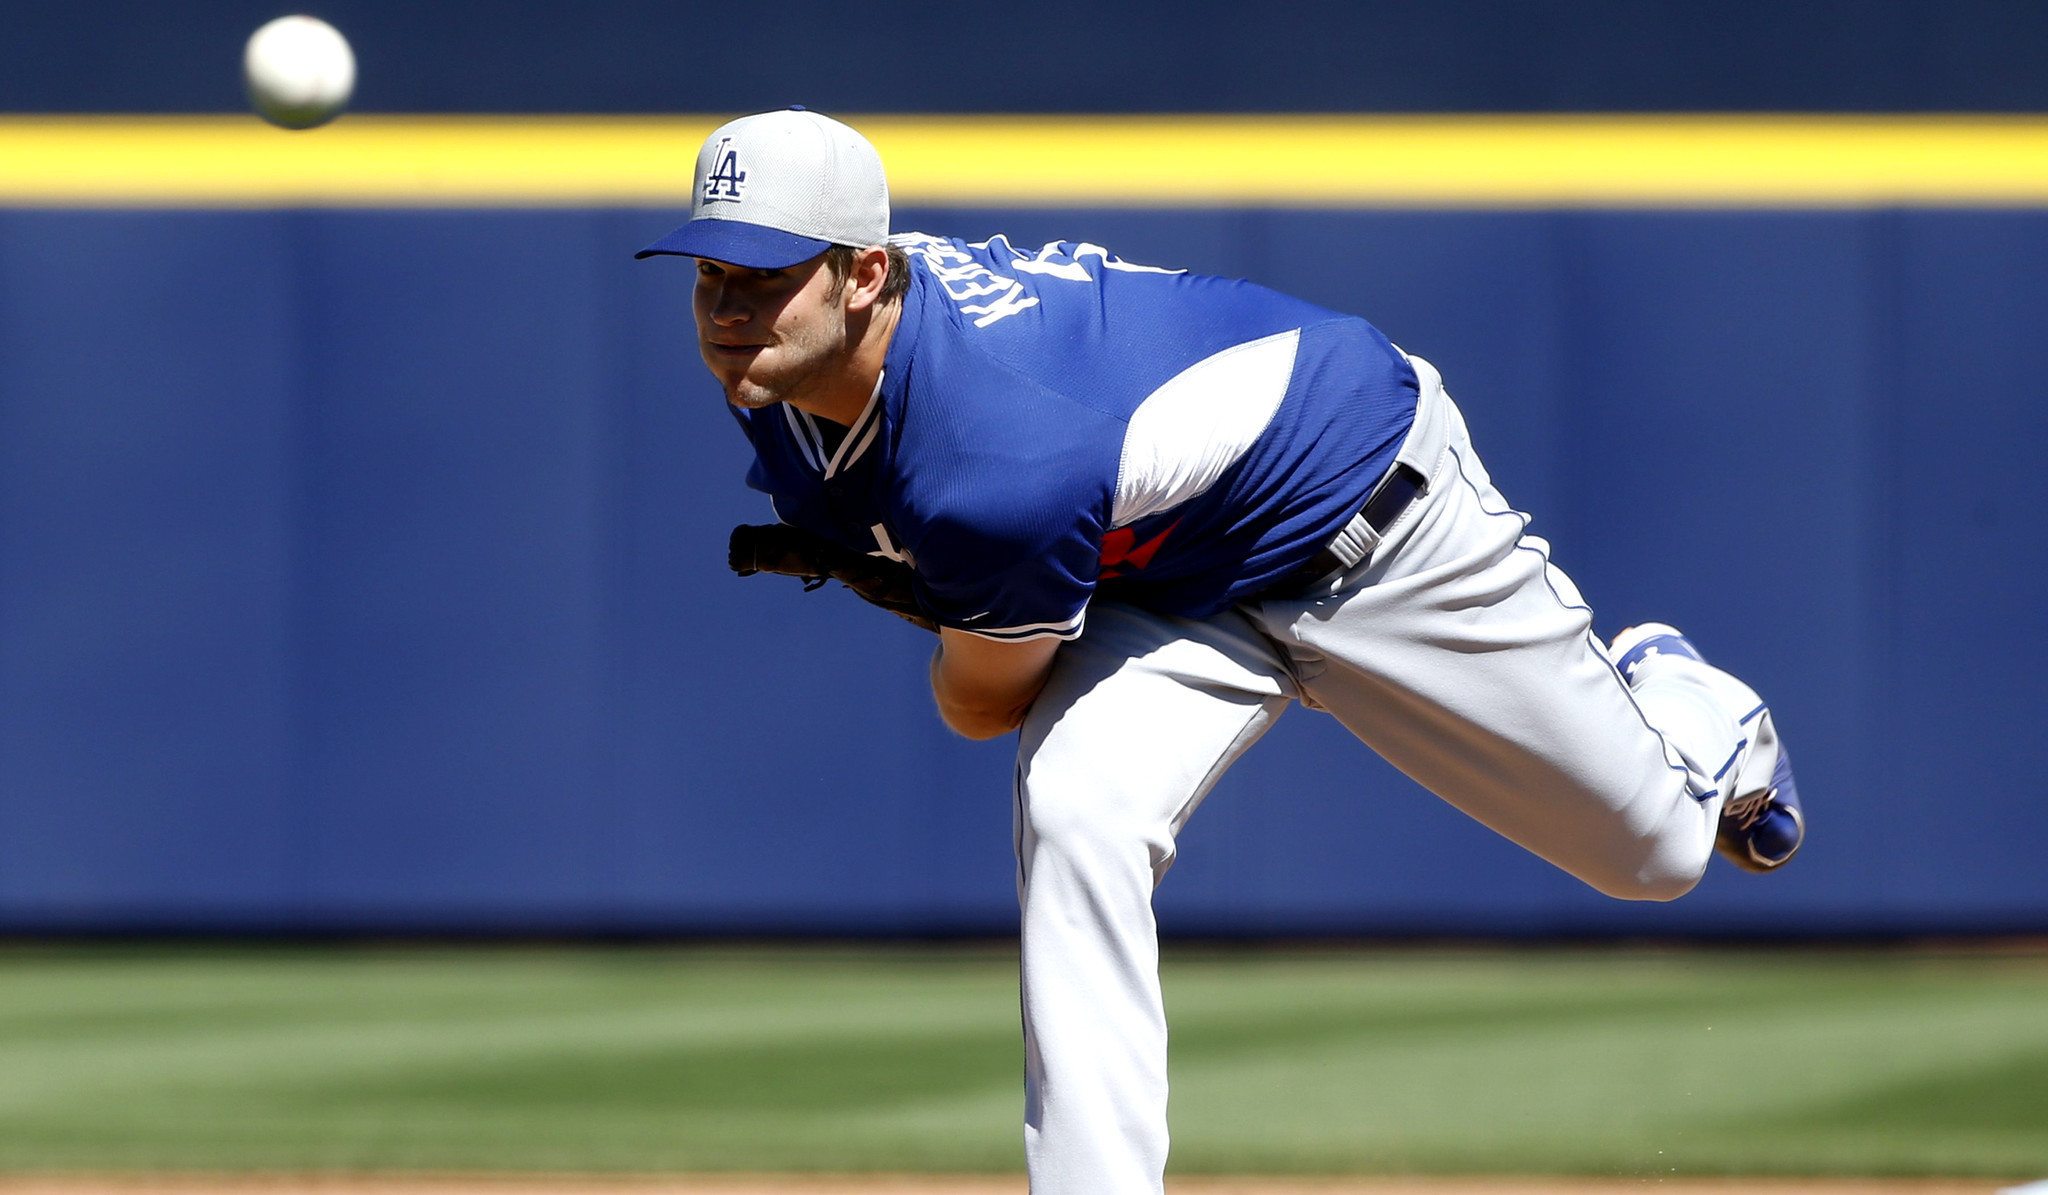 Dodgers ace Clayton Kershaw looks ready for opening day